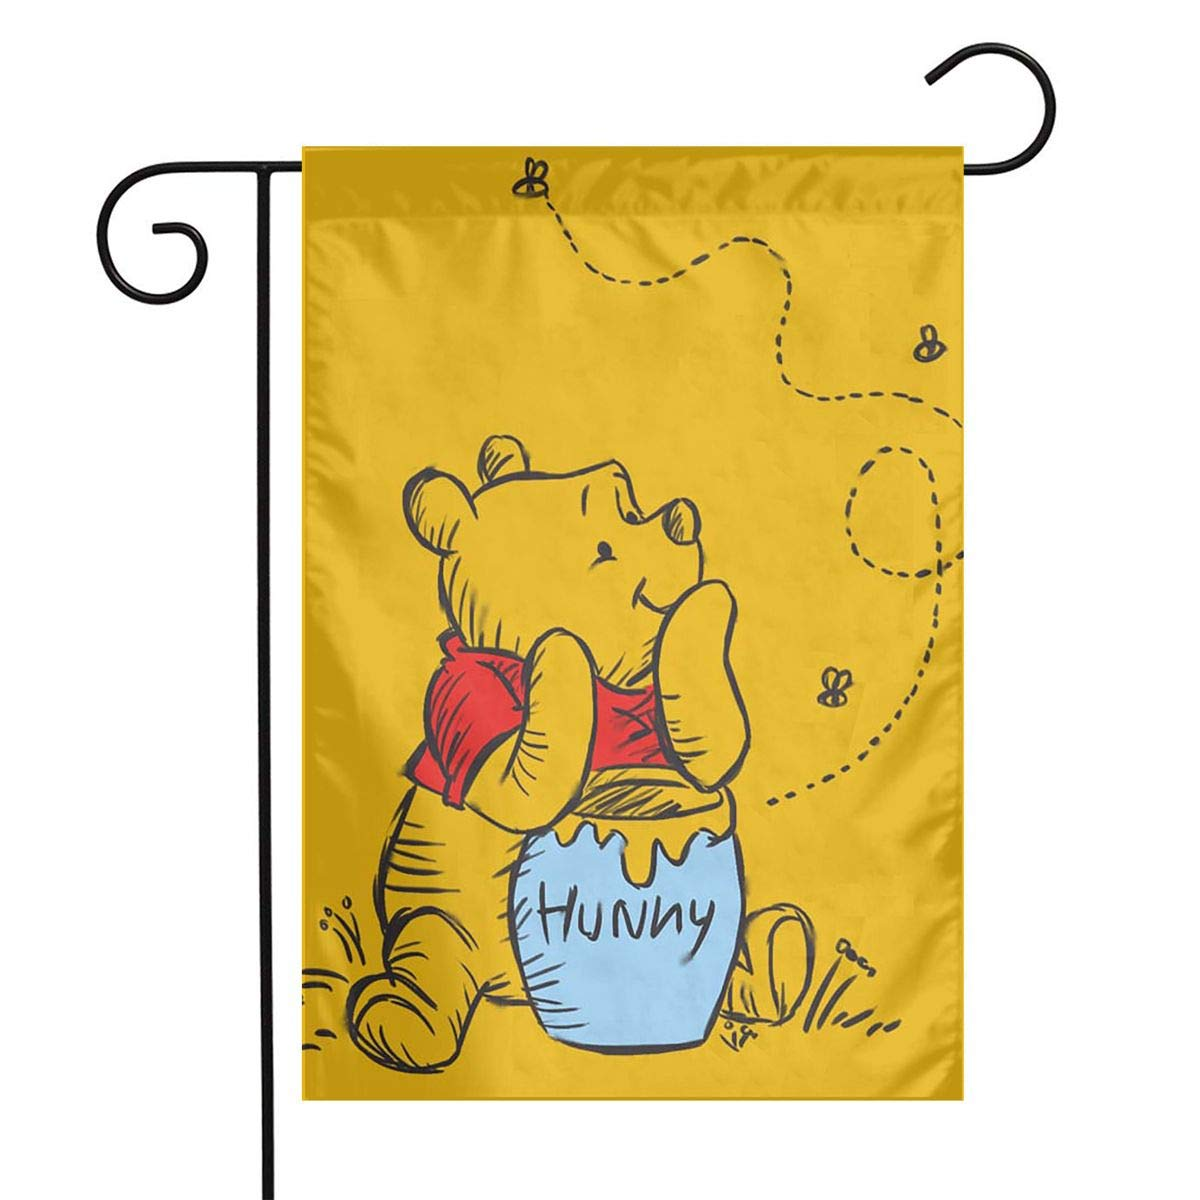 LIUYAN Garden Flag - Winnie The Pooh Unique Decorative Outdoor Yard Flags for Your Home 12 X 18 Inches